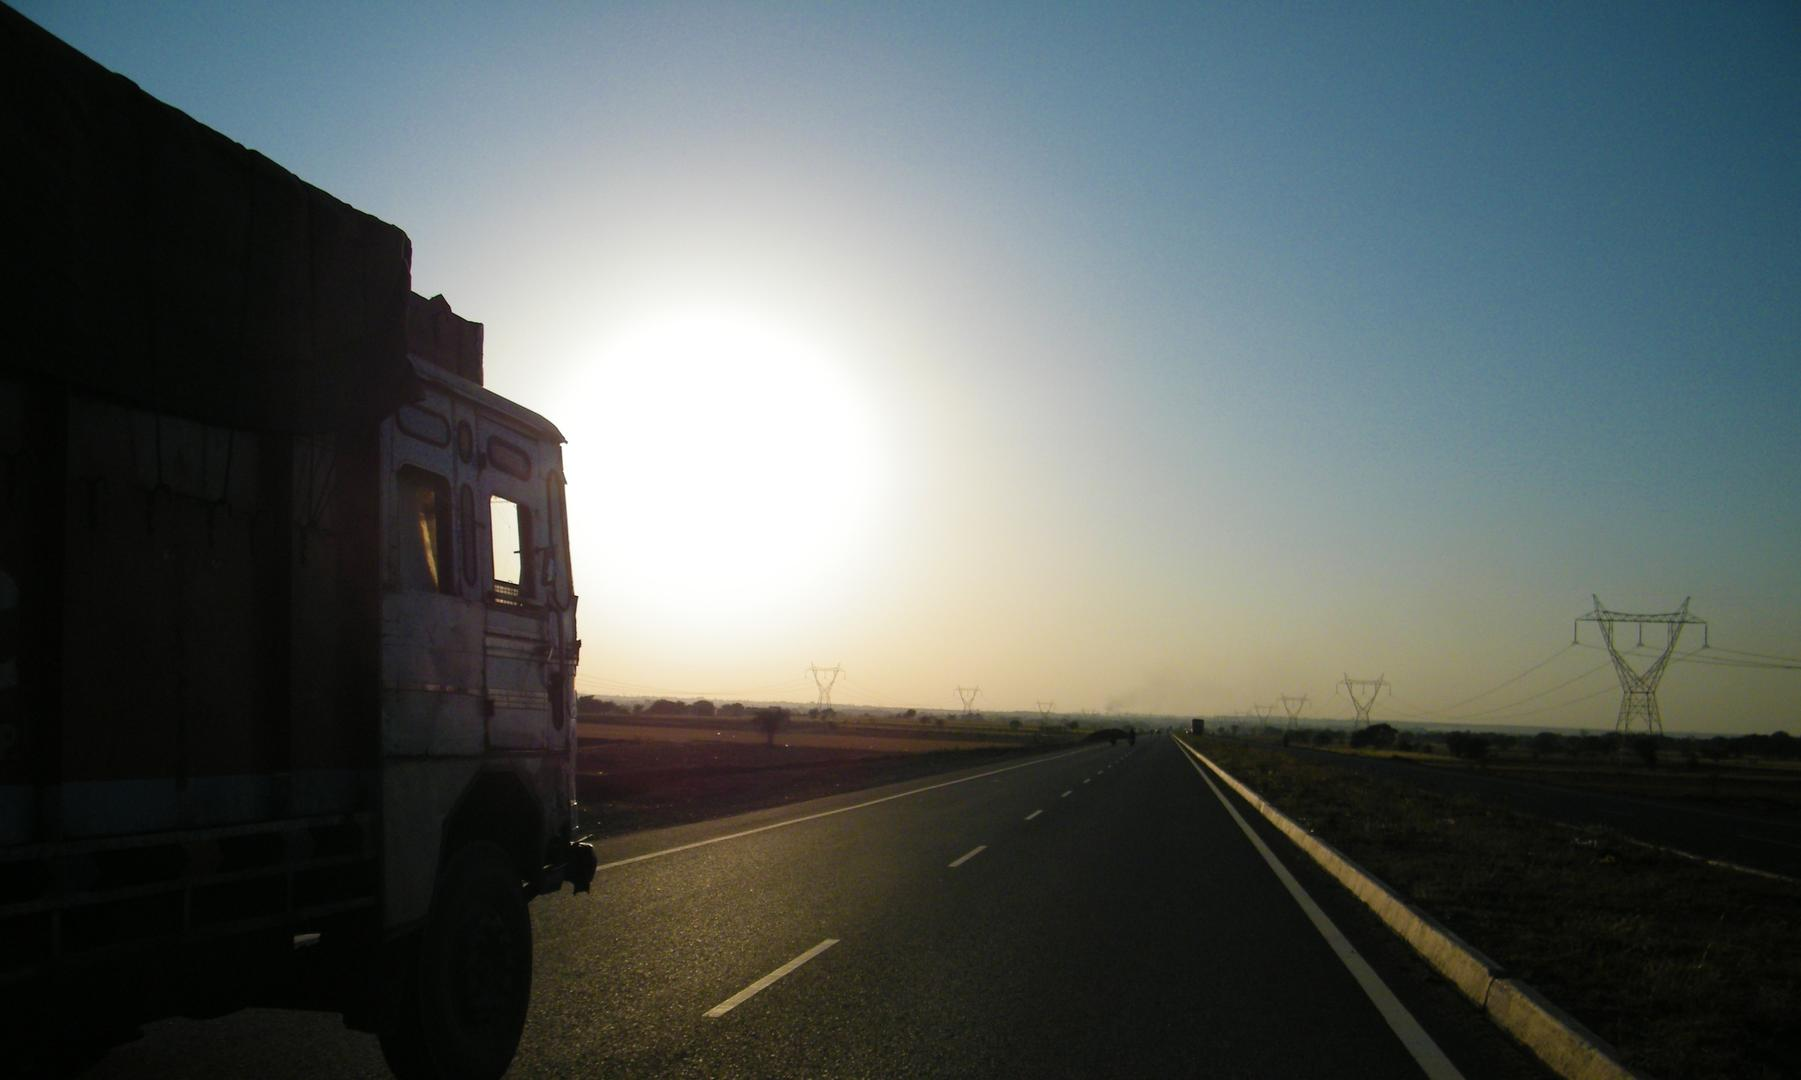 Lorry driving into either sunset or sunrise